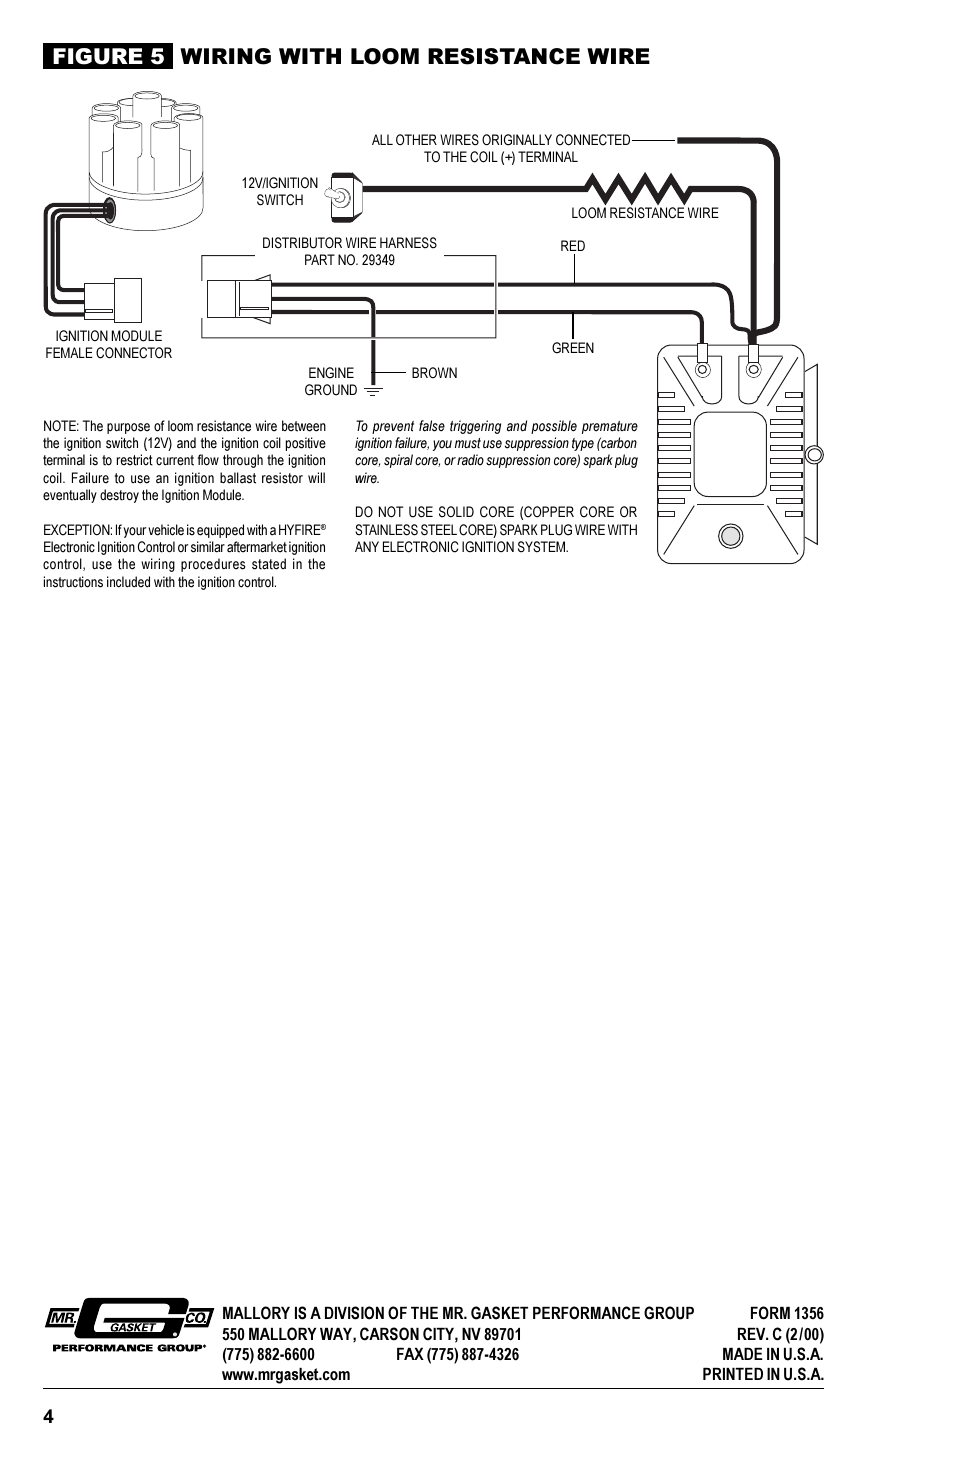 Coil Figure 5 Wiring With Loom Resistance Wire Mallory Ignition Harness Module What Do You Need For Your Magnetic Breakerless 609 User Manual Page 4